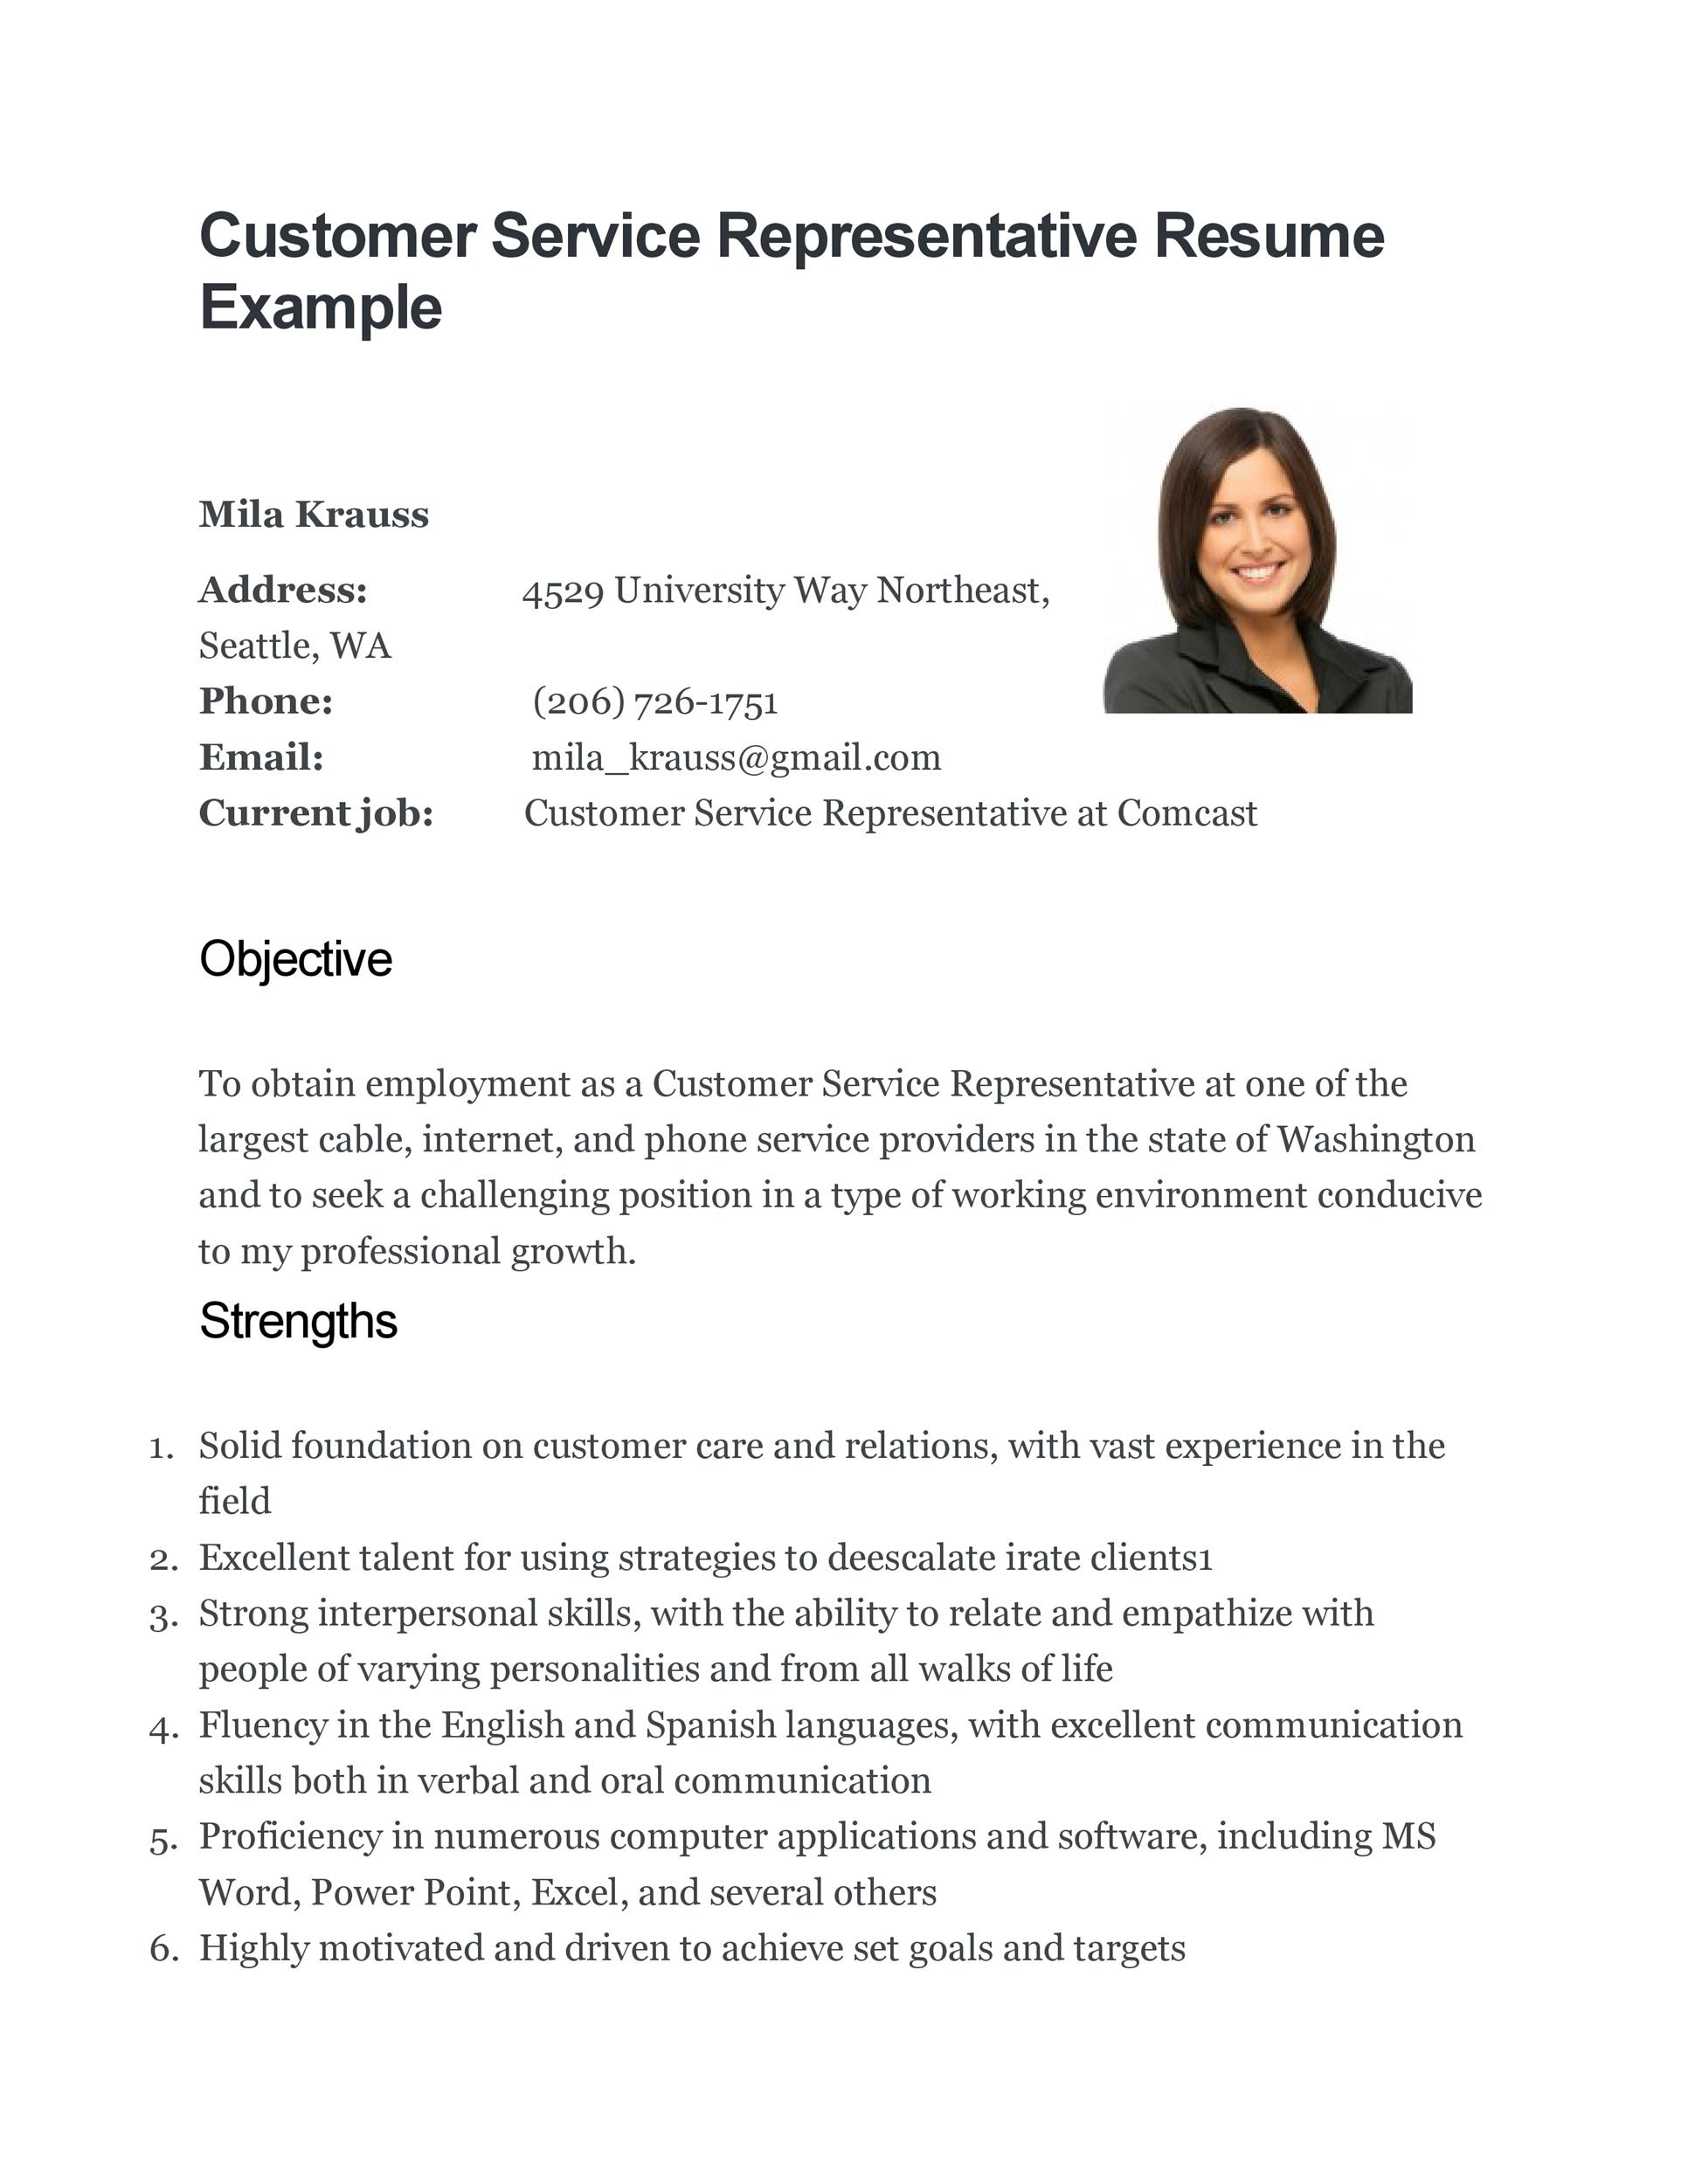 Customer Service Representative Resume Template 58